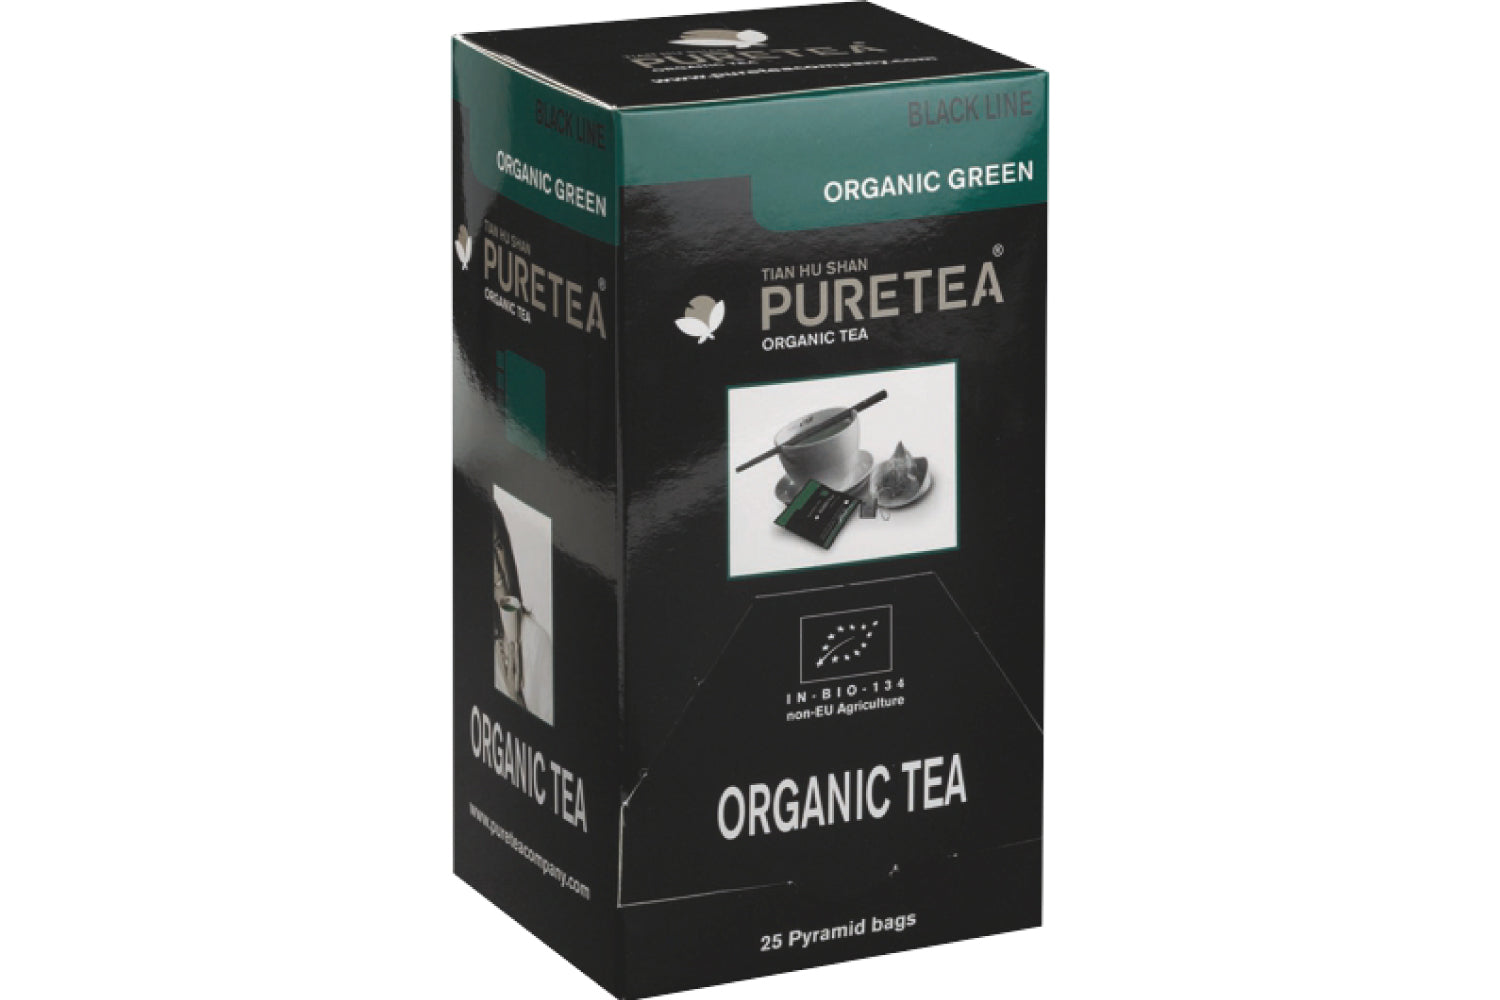 Pure Tea Black Organic Green